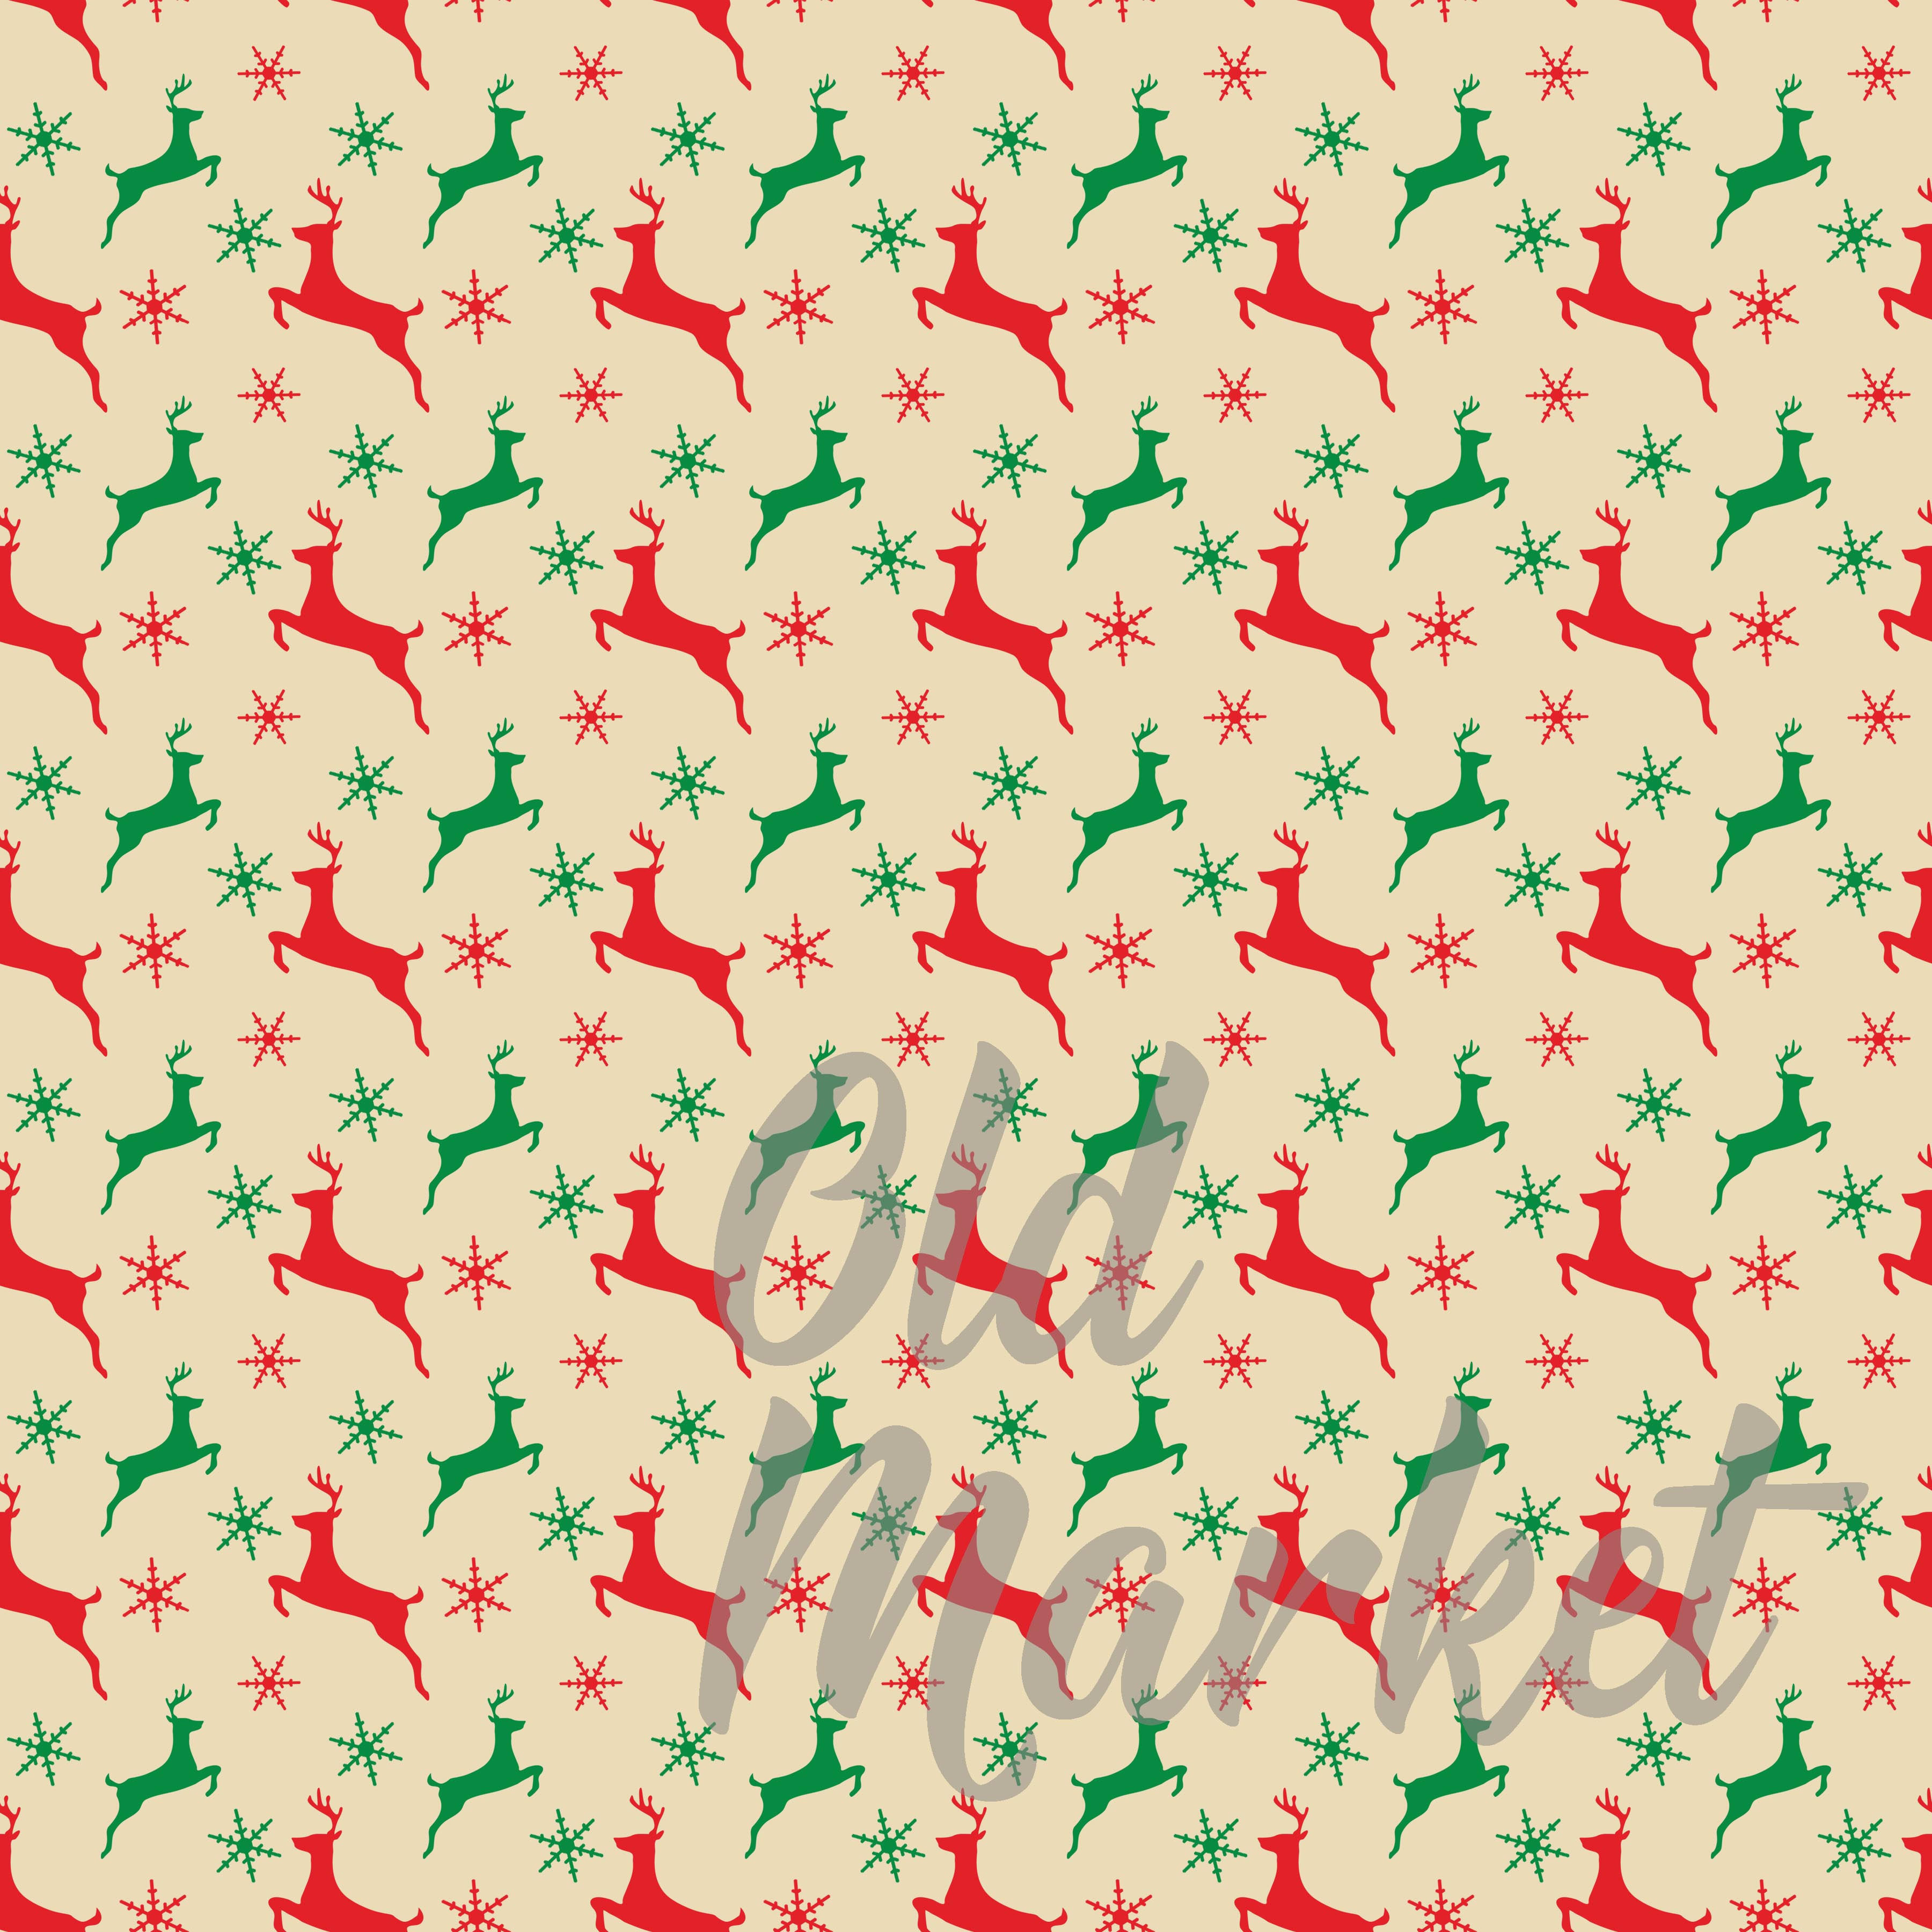 Classic Christmas Digital Paper Graphic By oldmarketdesigns Image 2